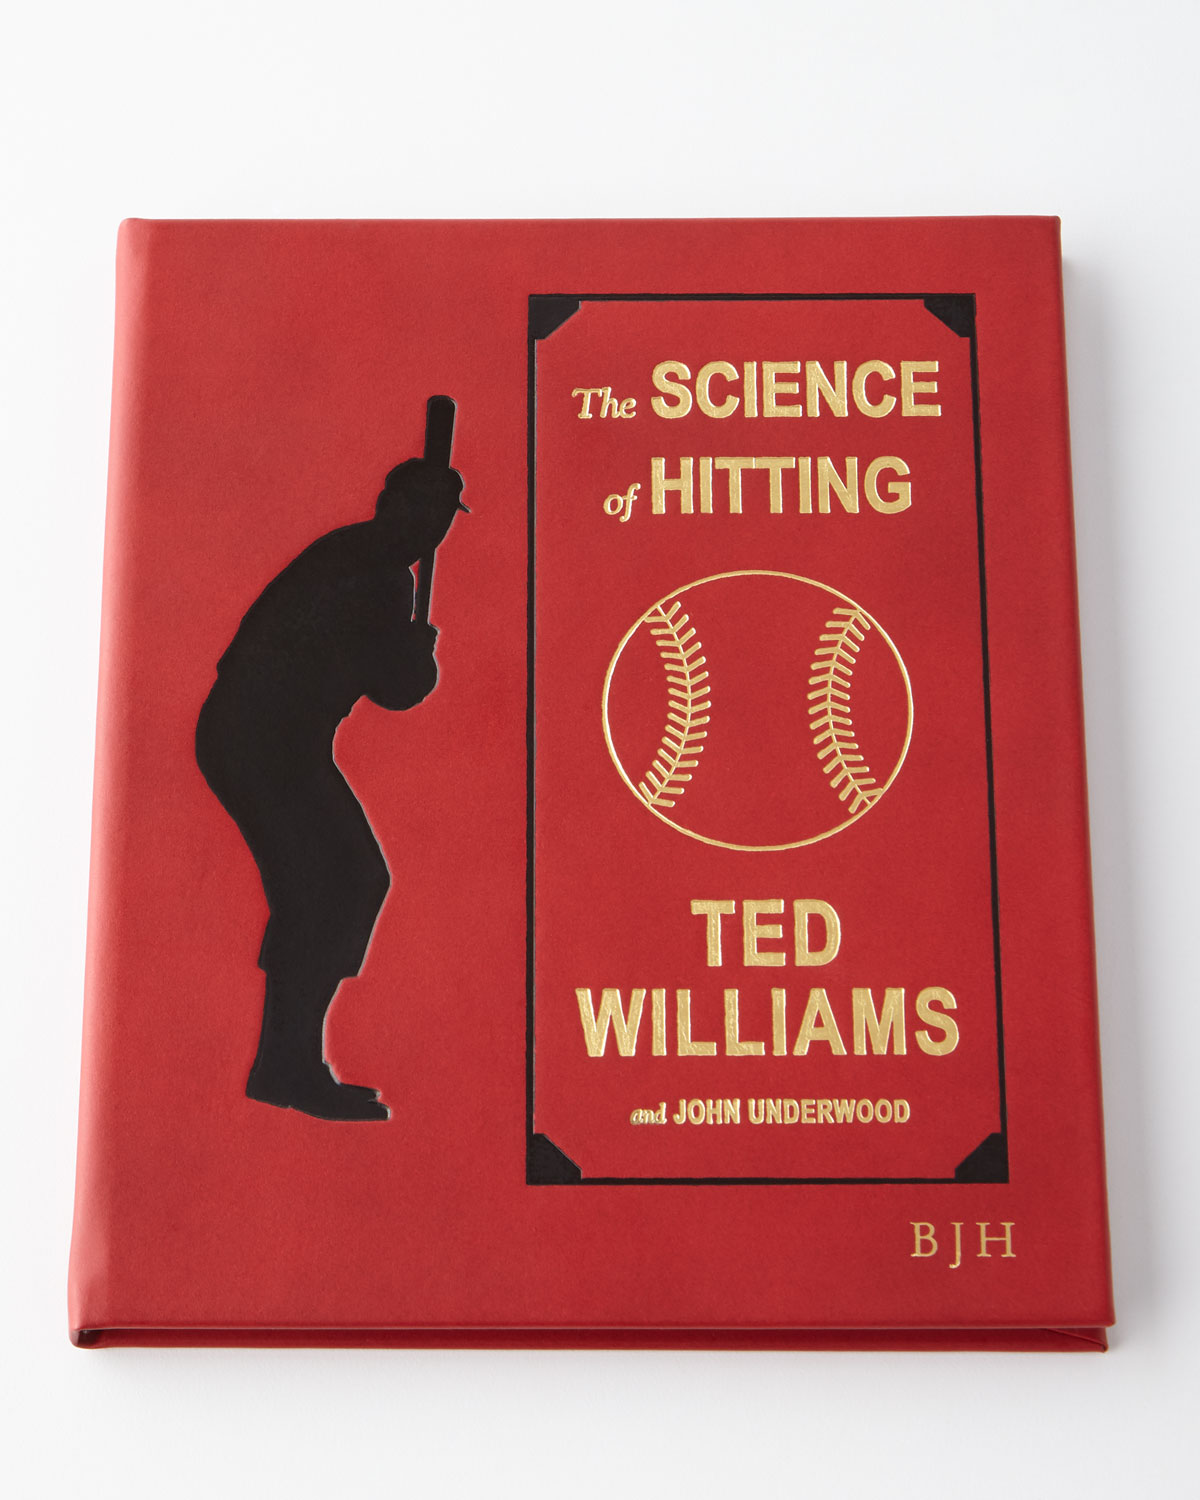 "The Science of of Hitting by Ted Williams and John Underwood. Personalization is up to three initials in gold foil and style shown. Italian bonded leather cover. 8""W x 0.5""D x 9.5""T. Made in the USA of imported materials."